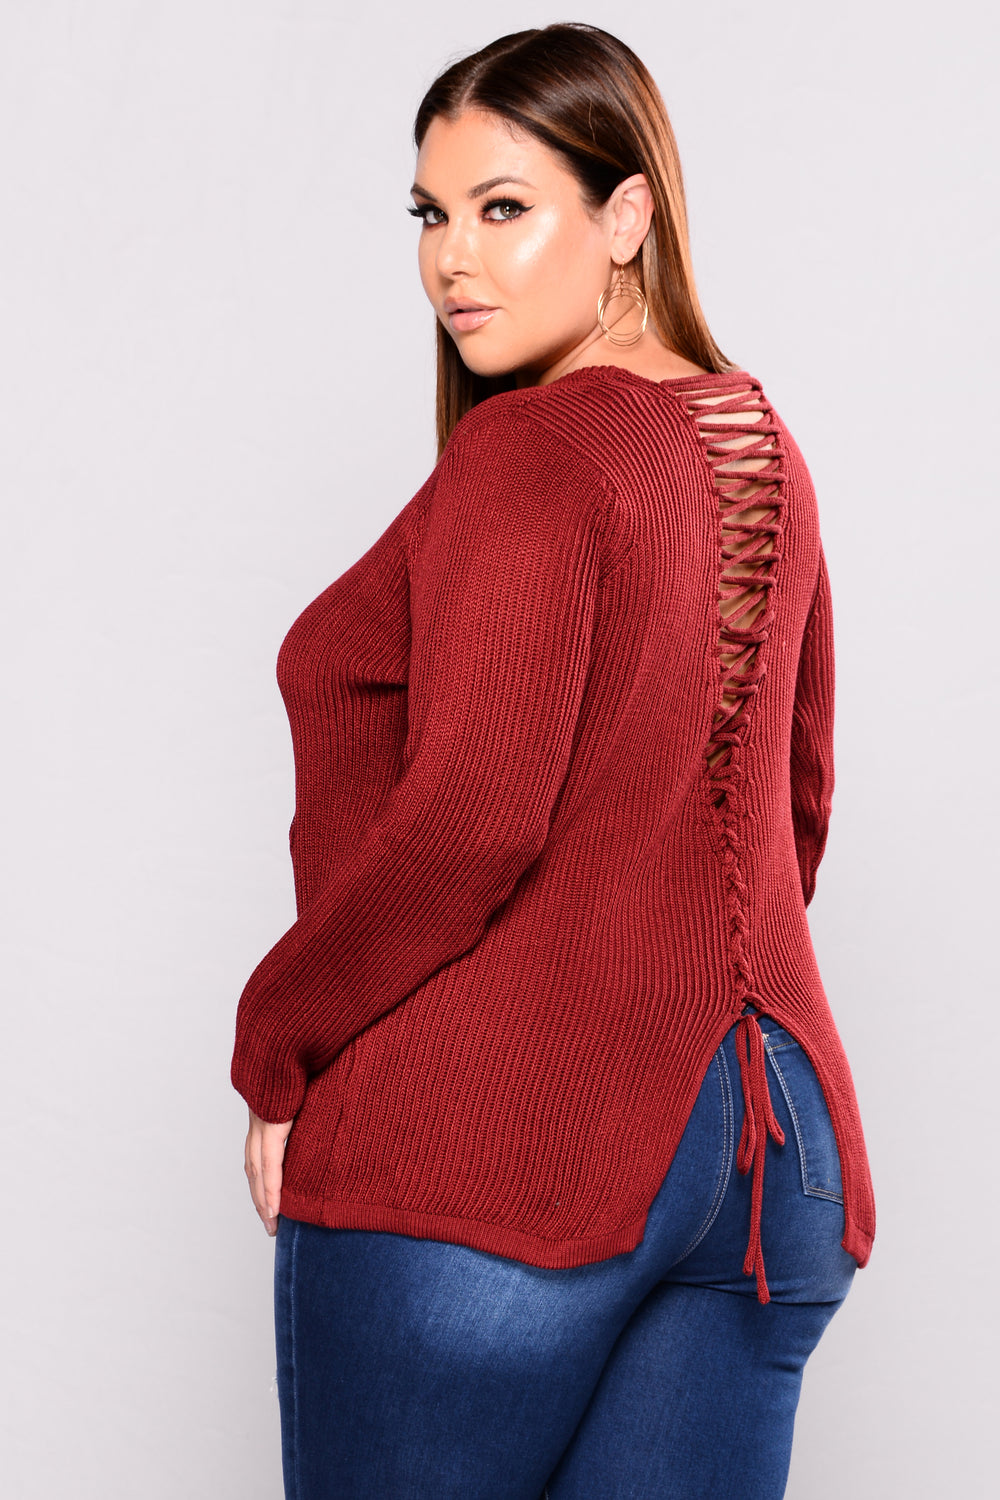 Get It Right Sweater - Red